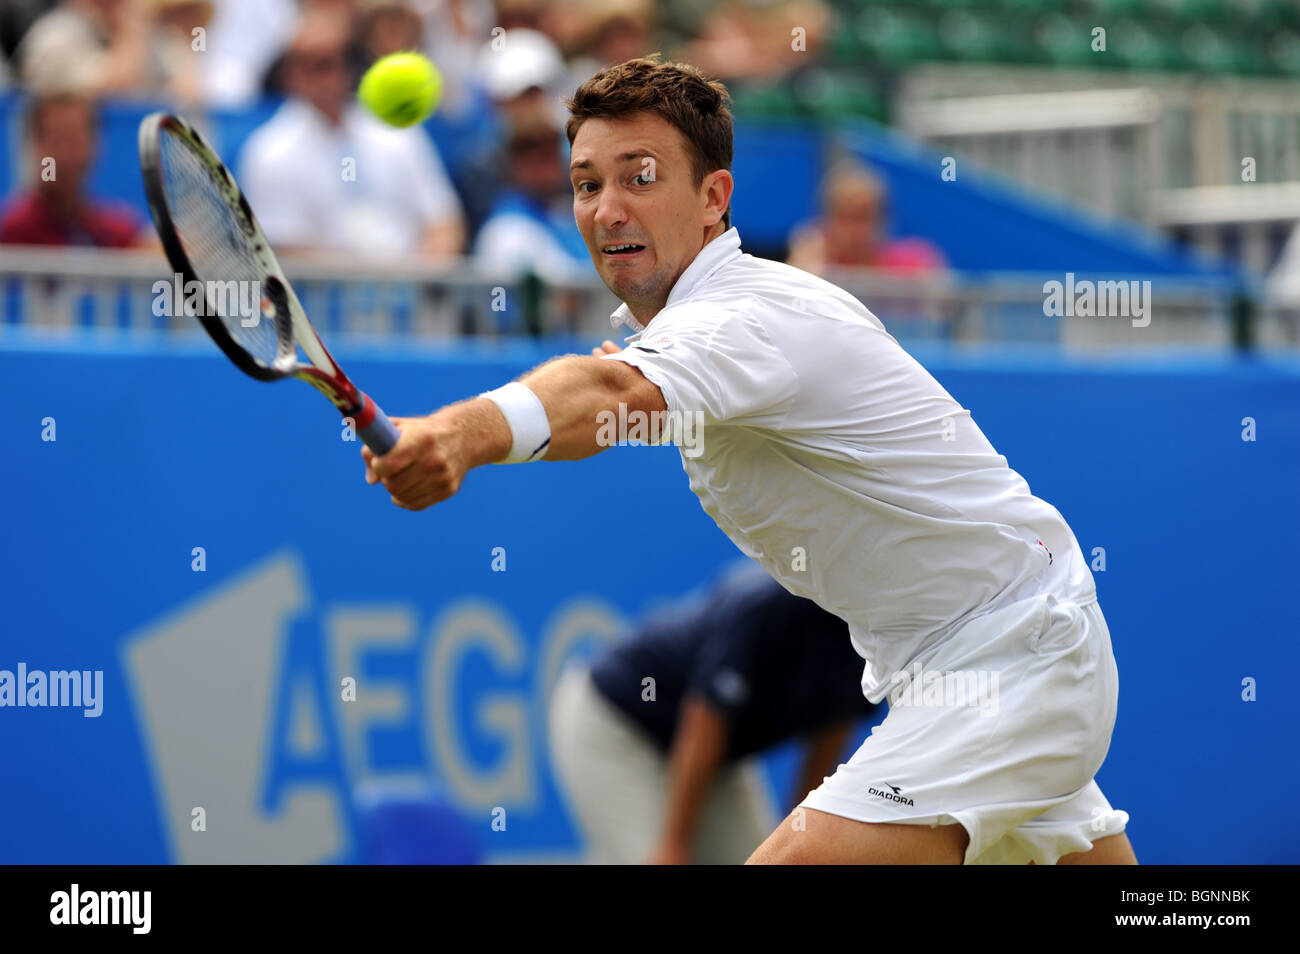 Alex Bogdanovic en action au cours de l'Aegon International 2009 Championnats de tennis du Devonshire Park à Photo Stock